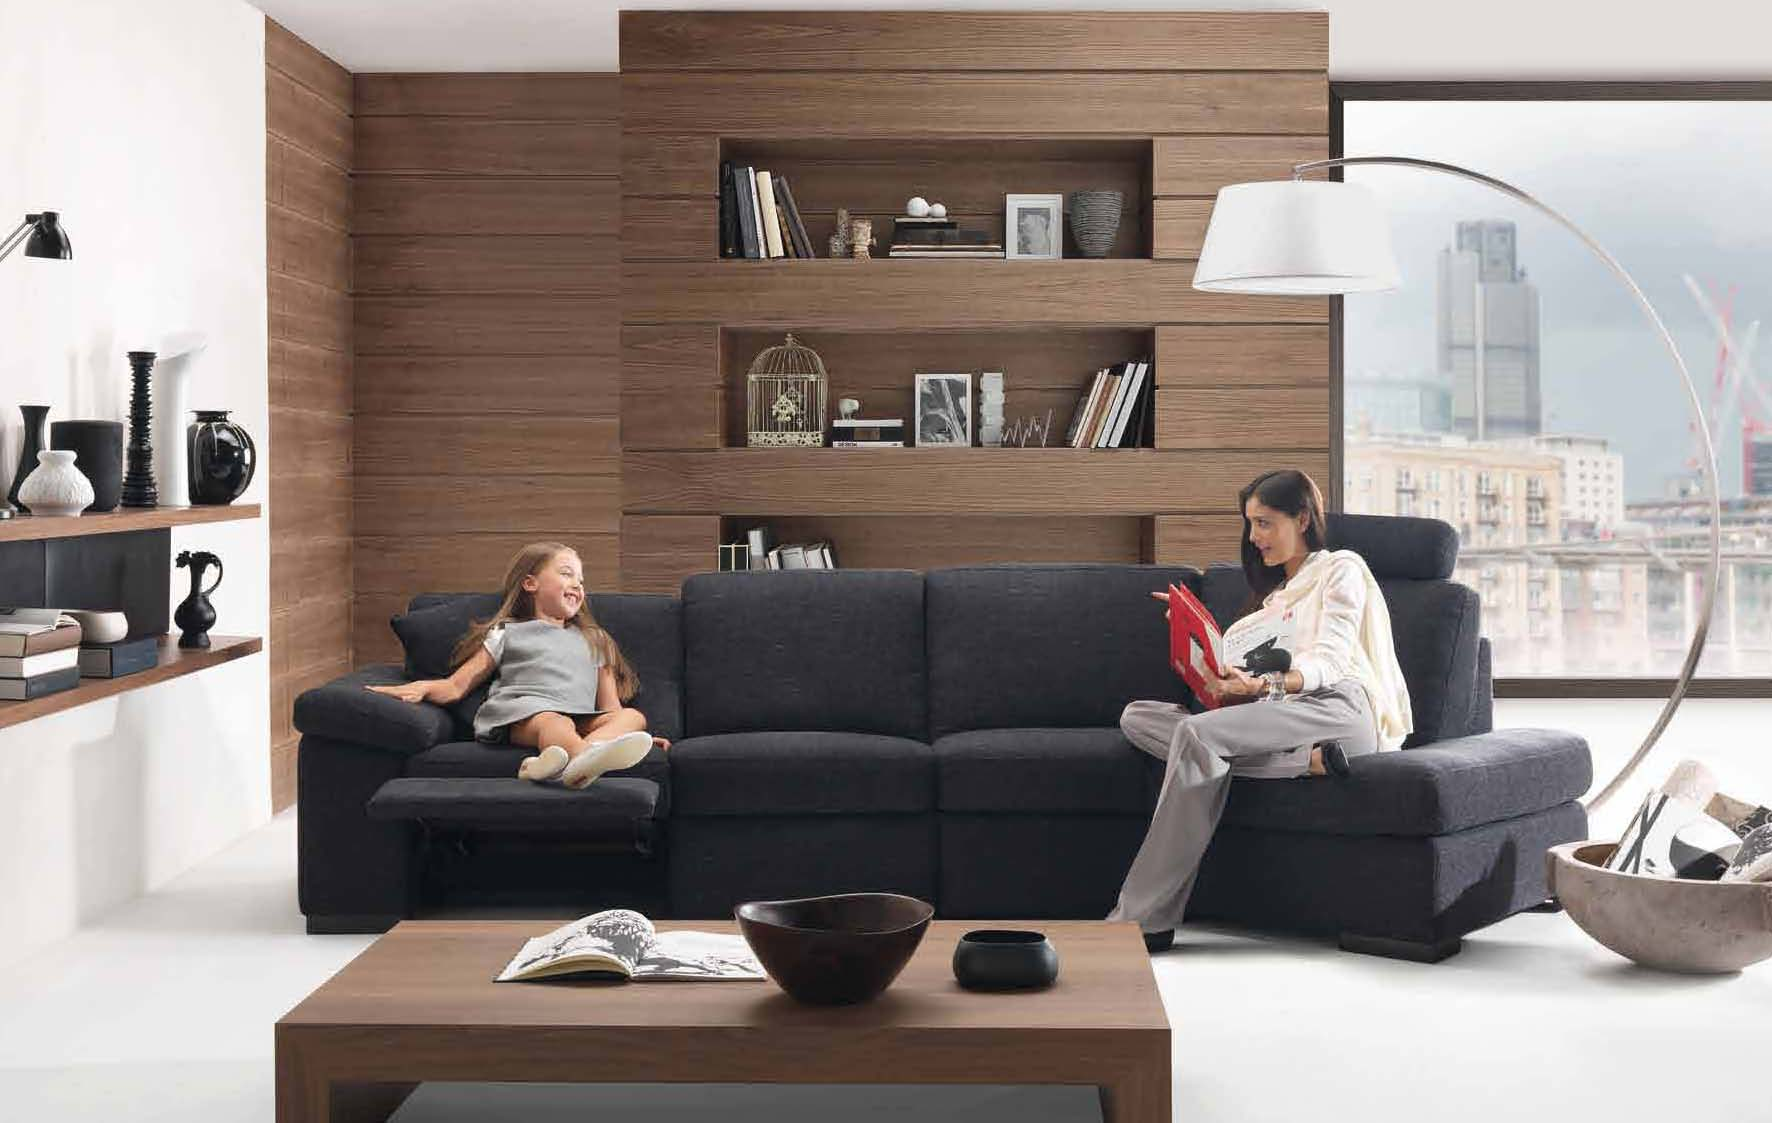 Living room styles 2010 by natuzzi for Family room design ideas